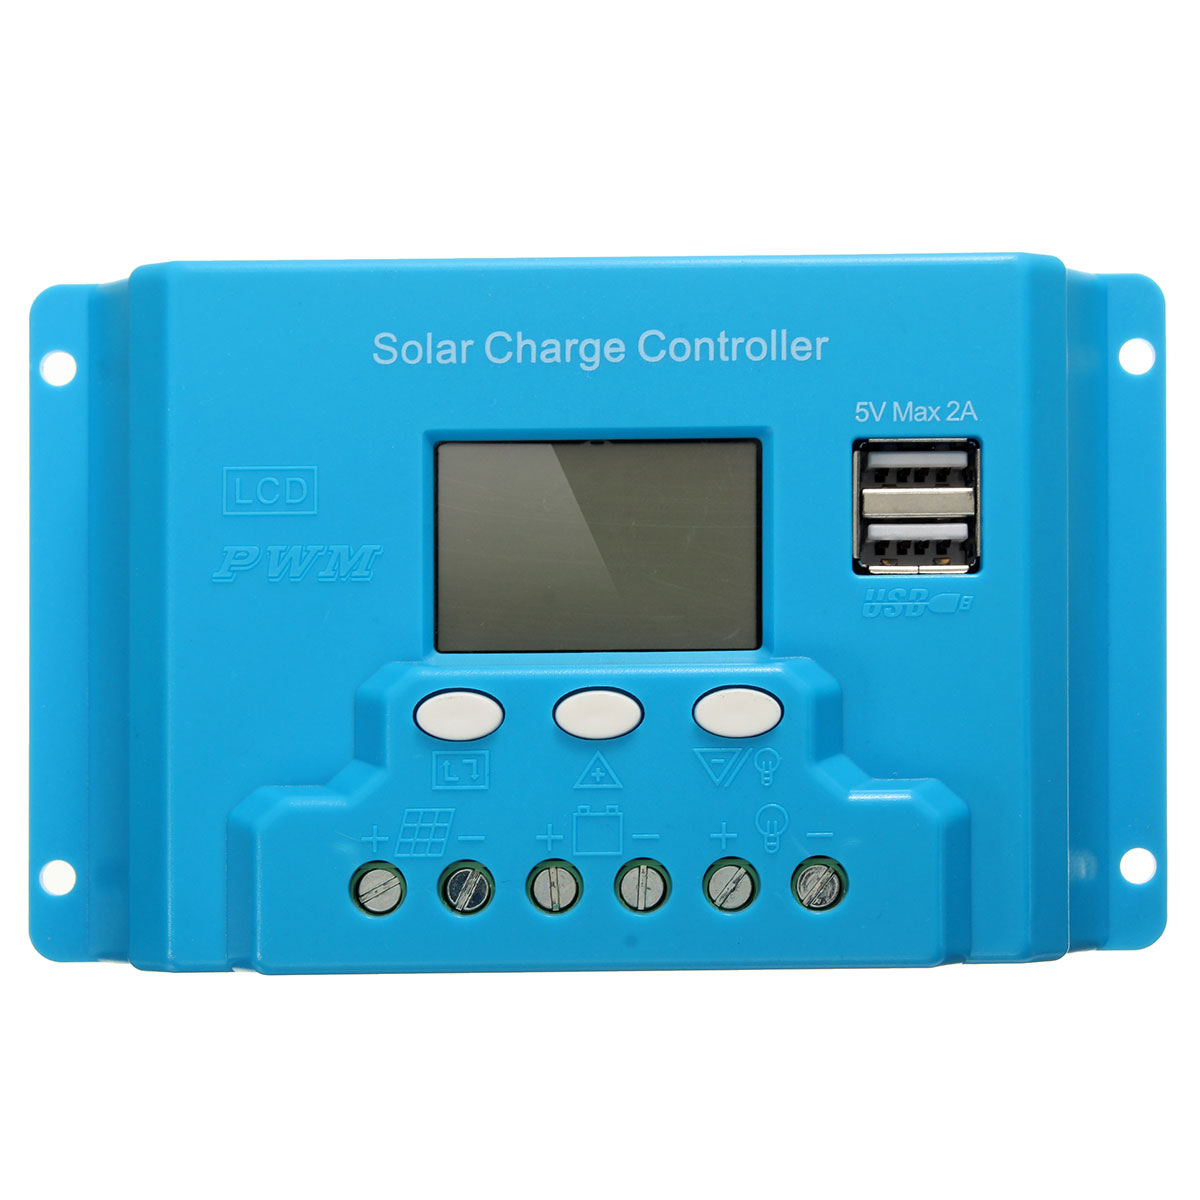 10A 20A 30A LCD PWM Solar Panel Charge Controller Battery Regulator 12V/24V with Dual USB баранова к дули дж копылова в мильруд р эванс в starlight student s book английский язык 8 класс учебник